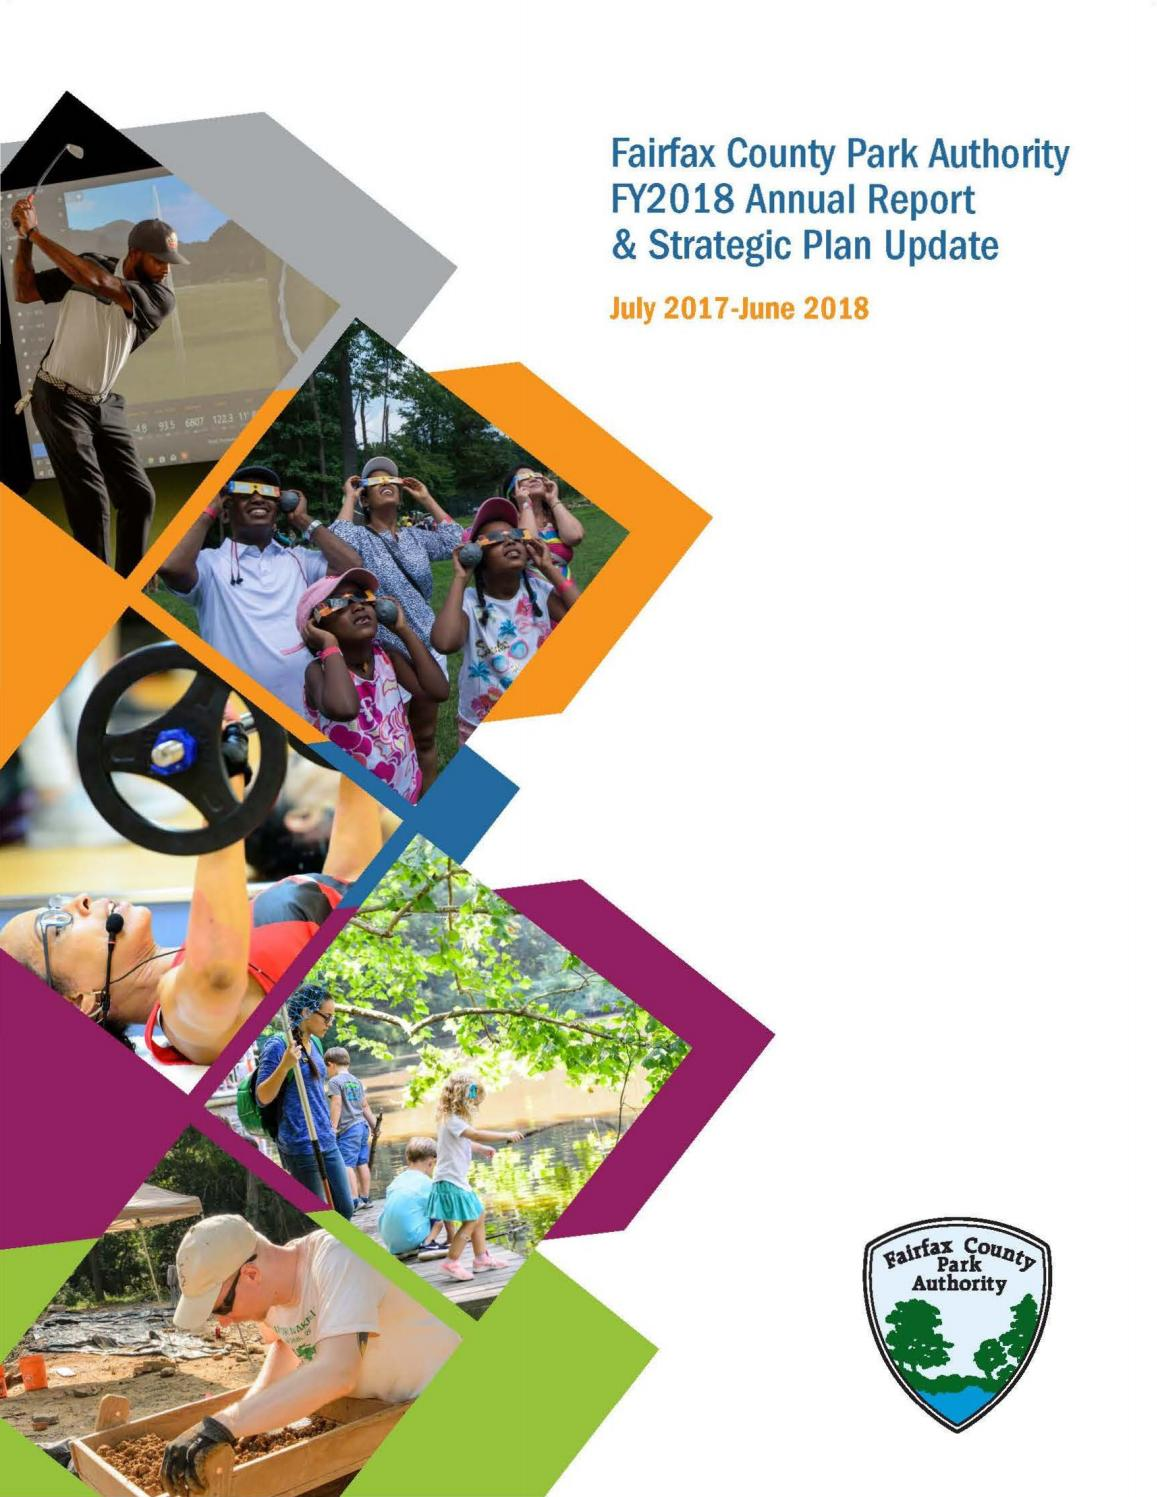 FY2018 Strategic Plan and Annual Report by Fairfax County Park